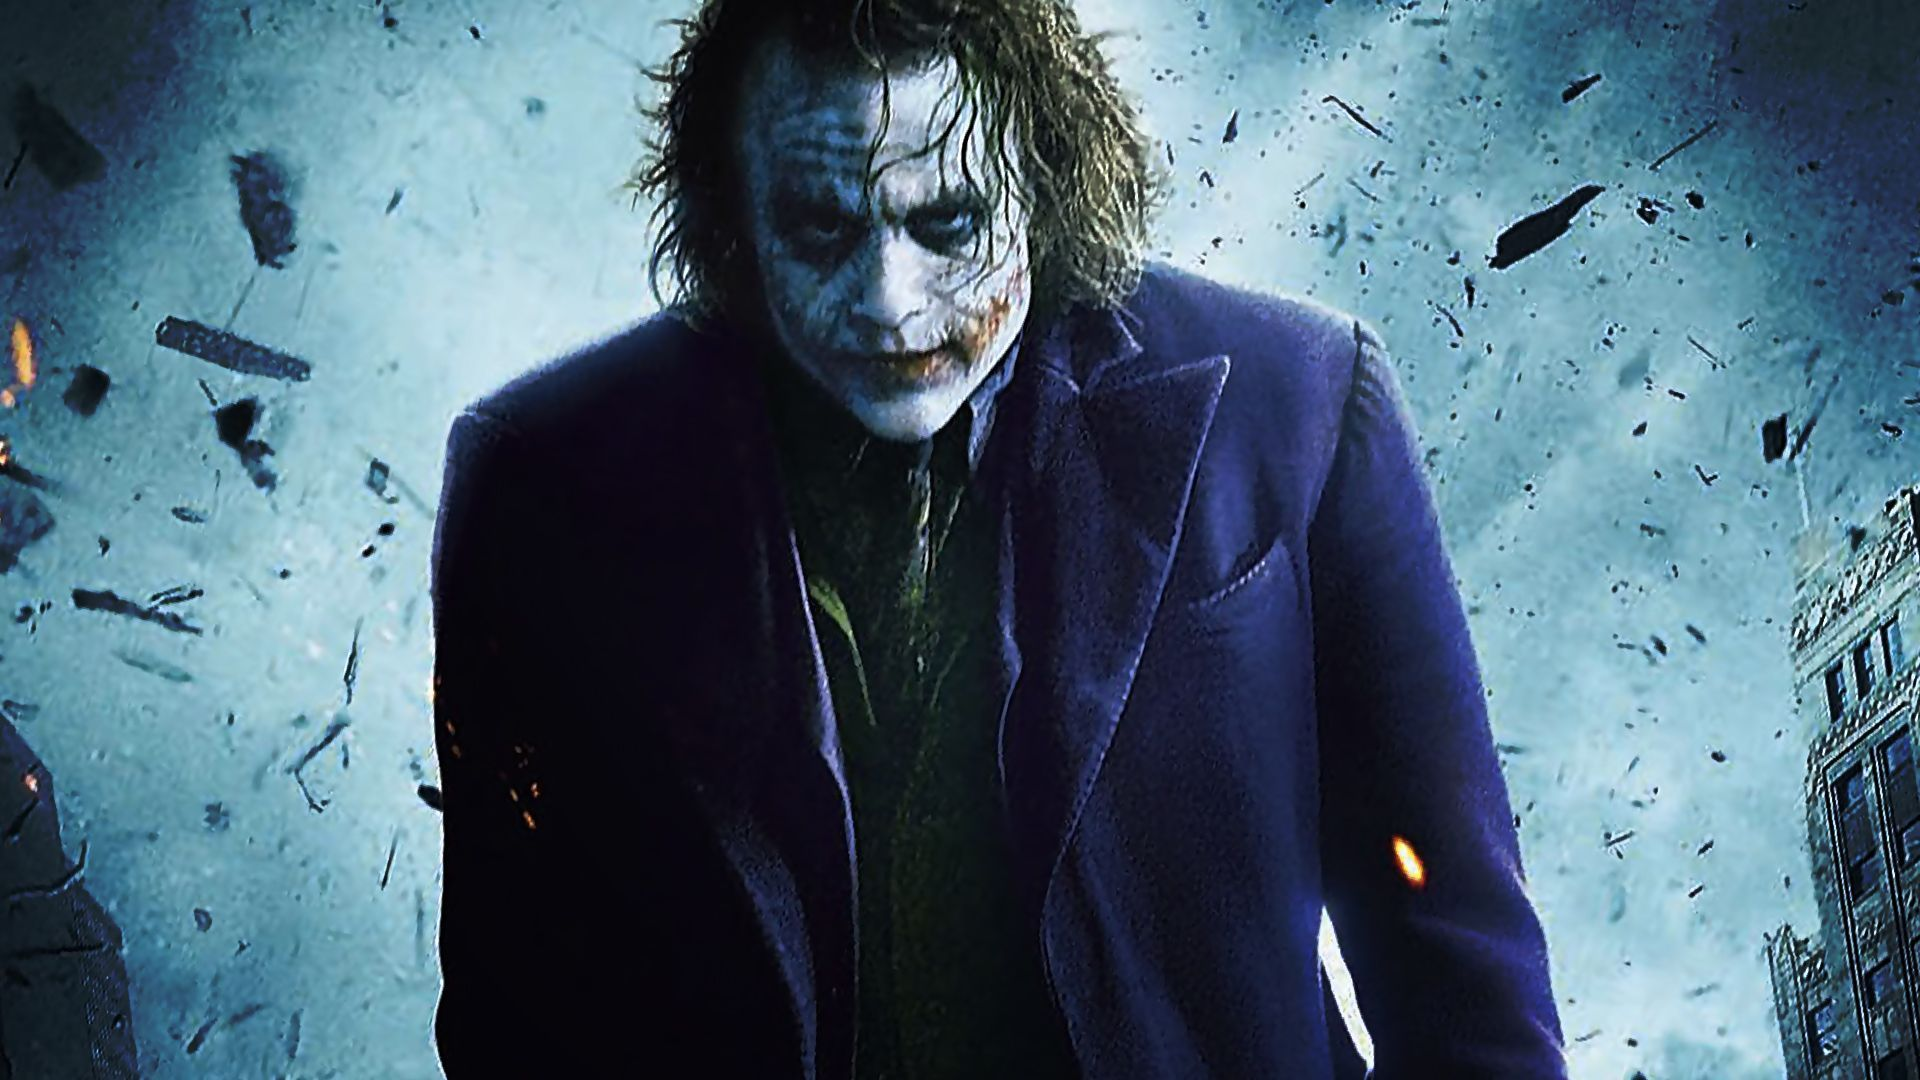 The Best Portrayal Of The Joker By Heath Ledger Con Imagenes